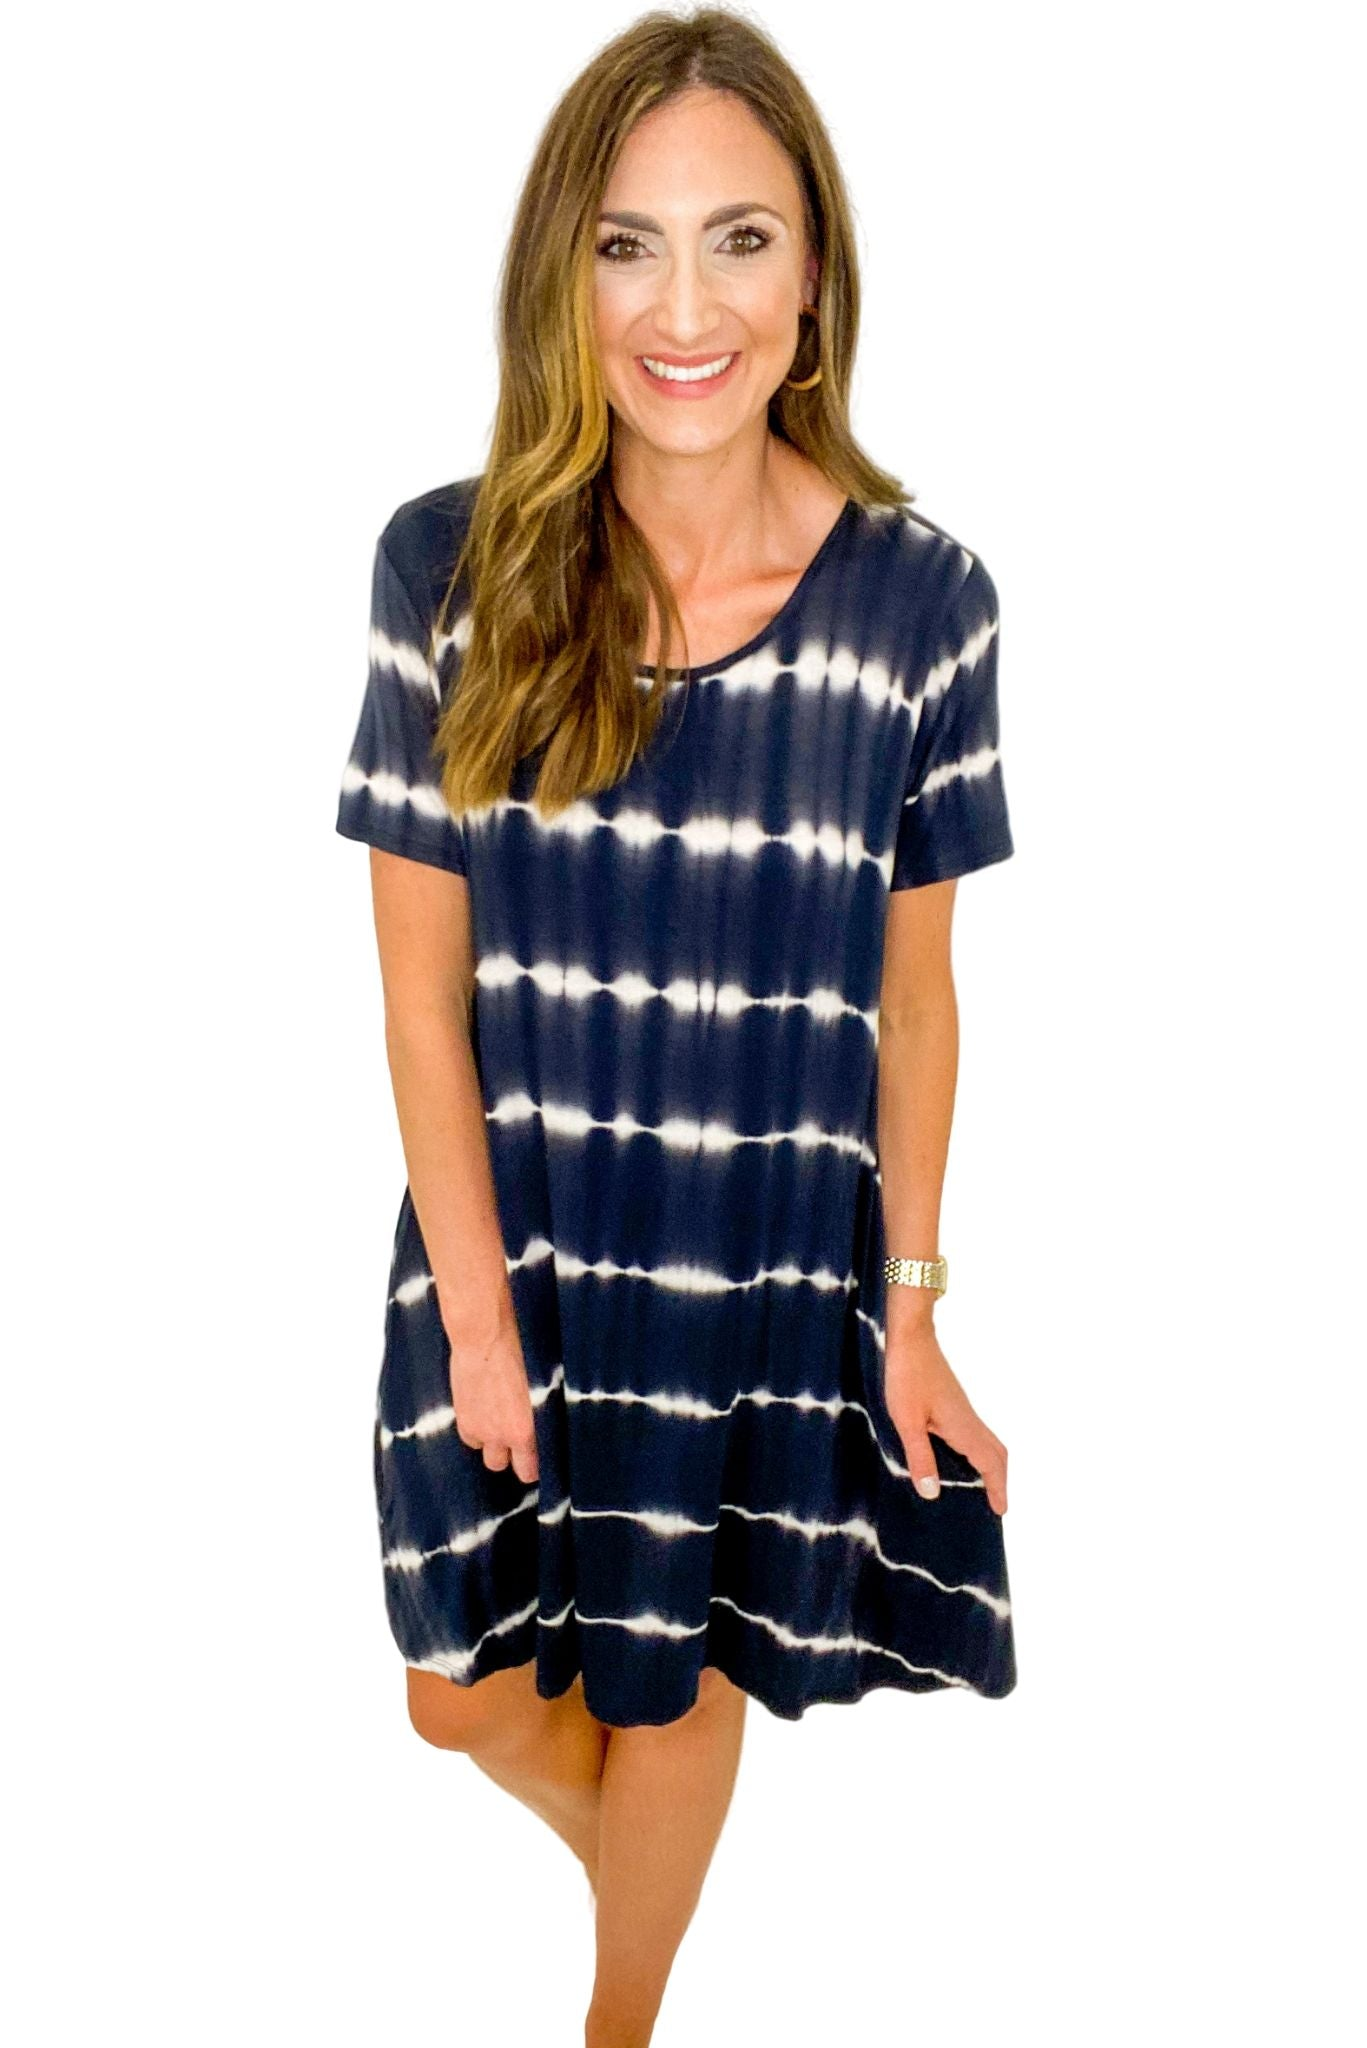 Black and White Short Sleeve Tie Dye Dress